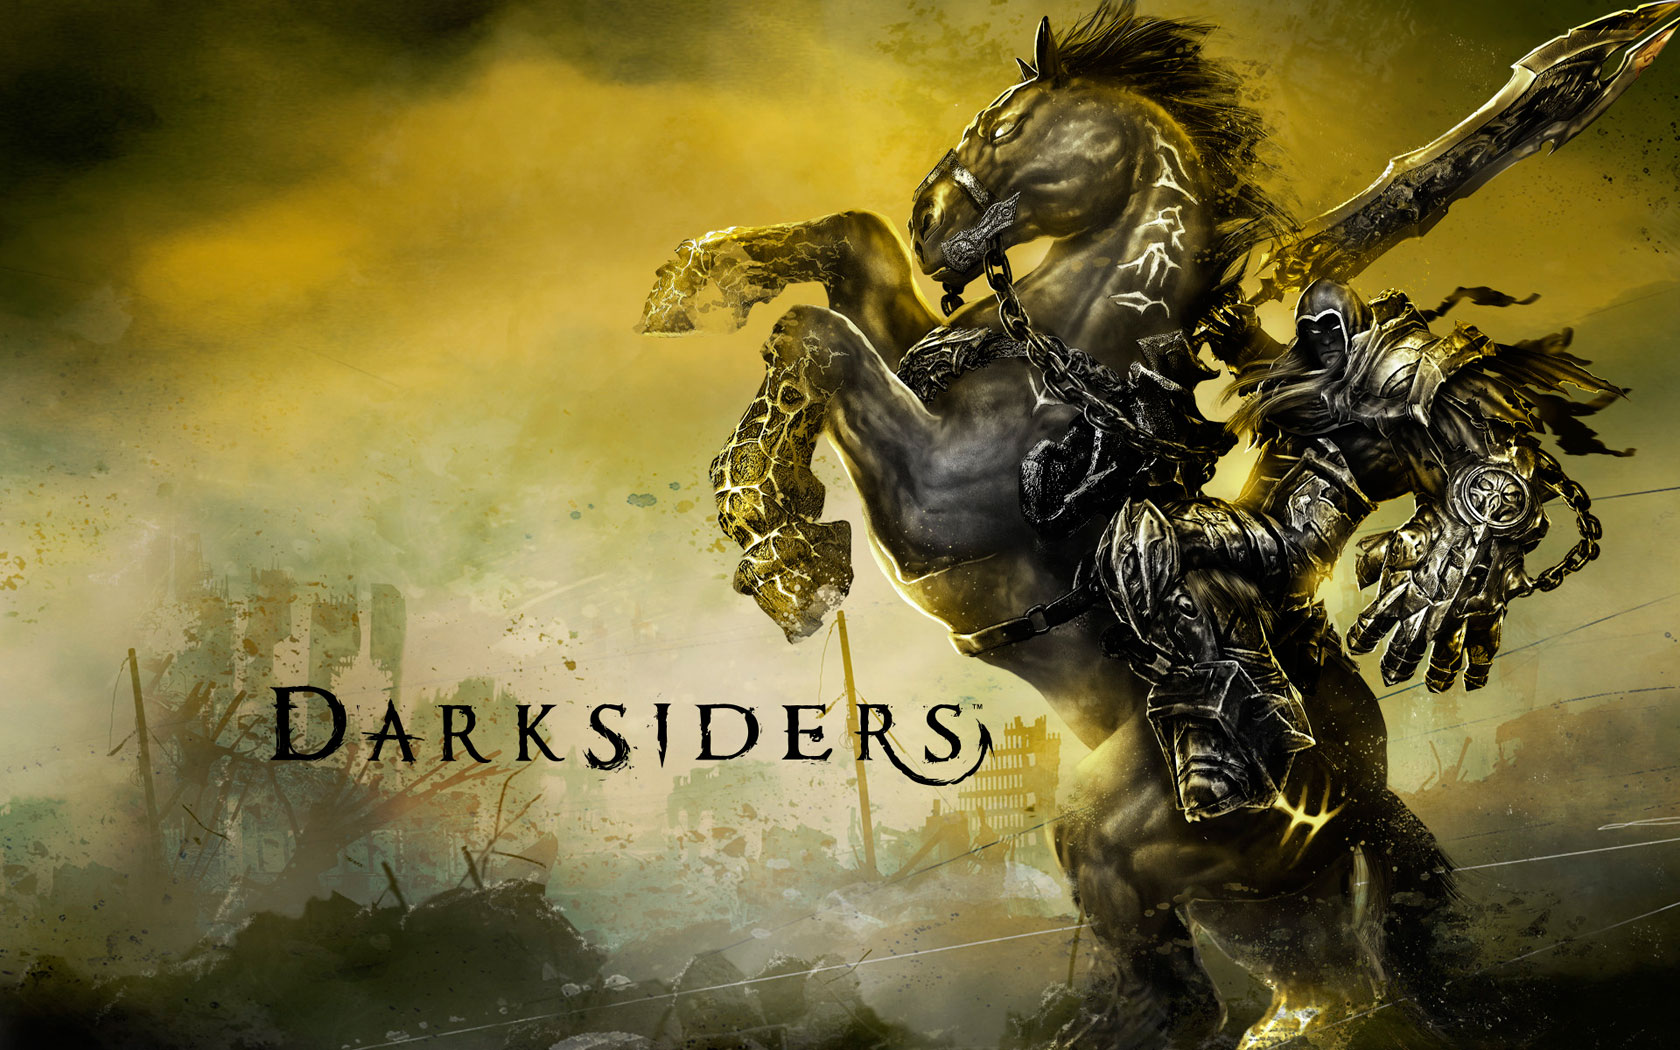 Game Fix Crack Darksiders v11 All No DVD [Prophet 1680x1050